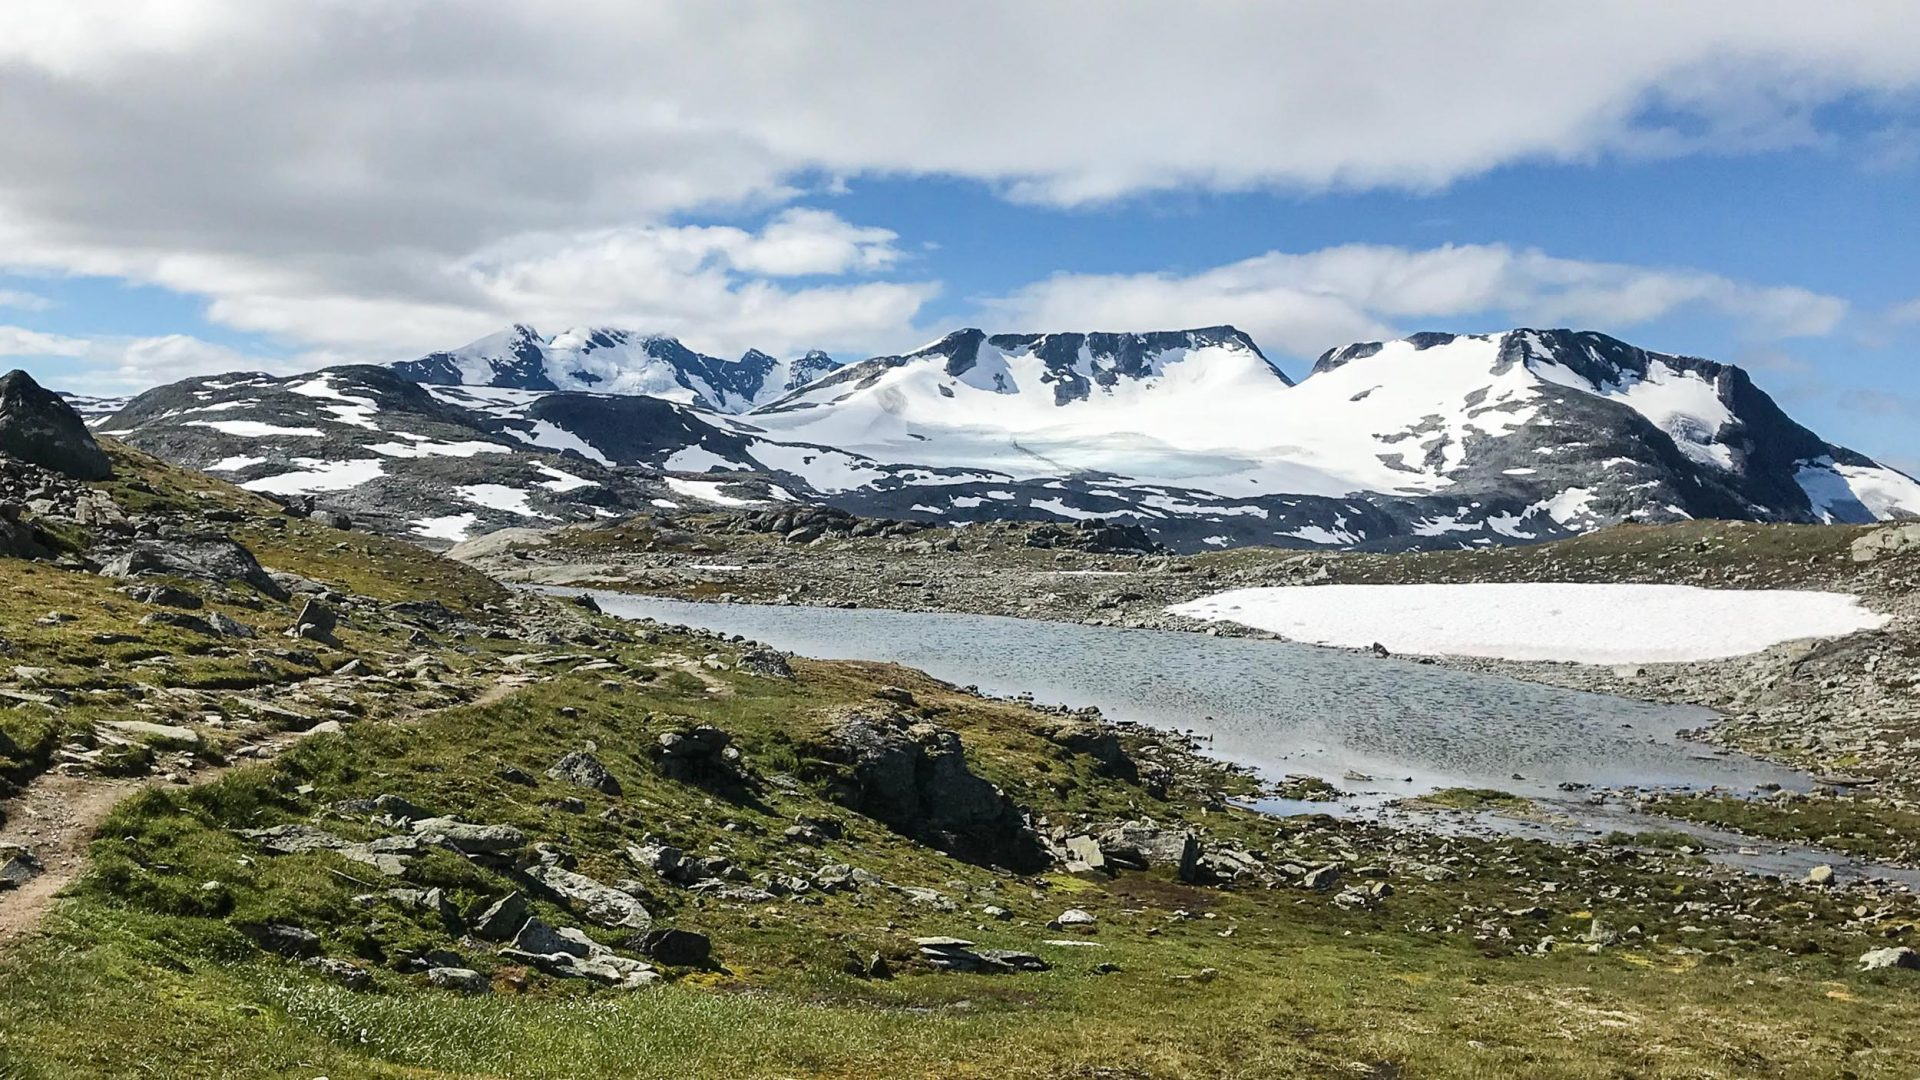 What do melting glaciers have to do with Norway's Viking relics?